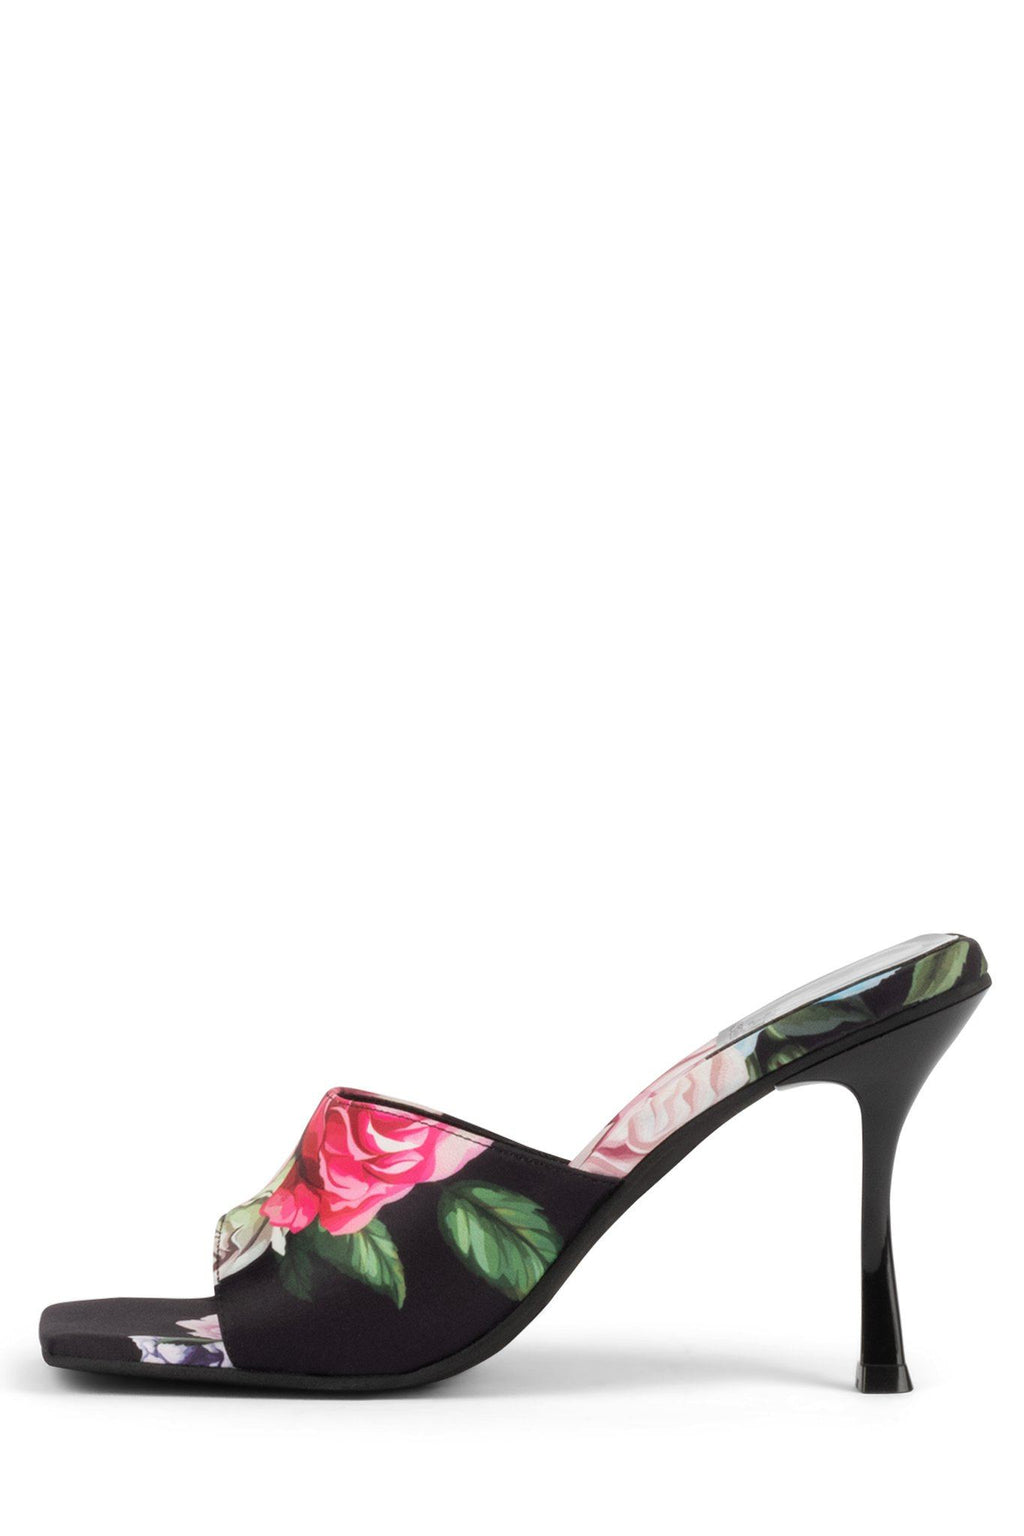 UTOPIC Heeled Mule YYH Black Blue Rose 6